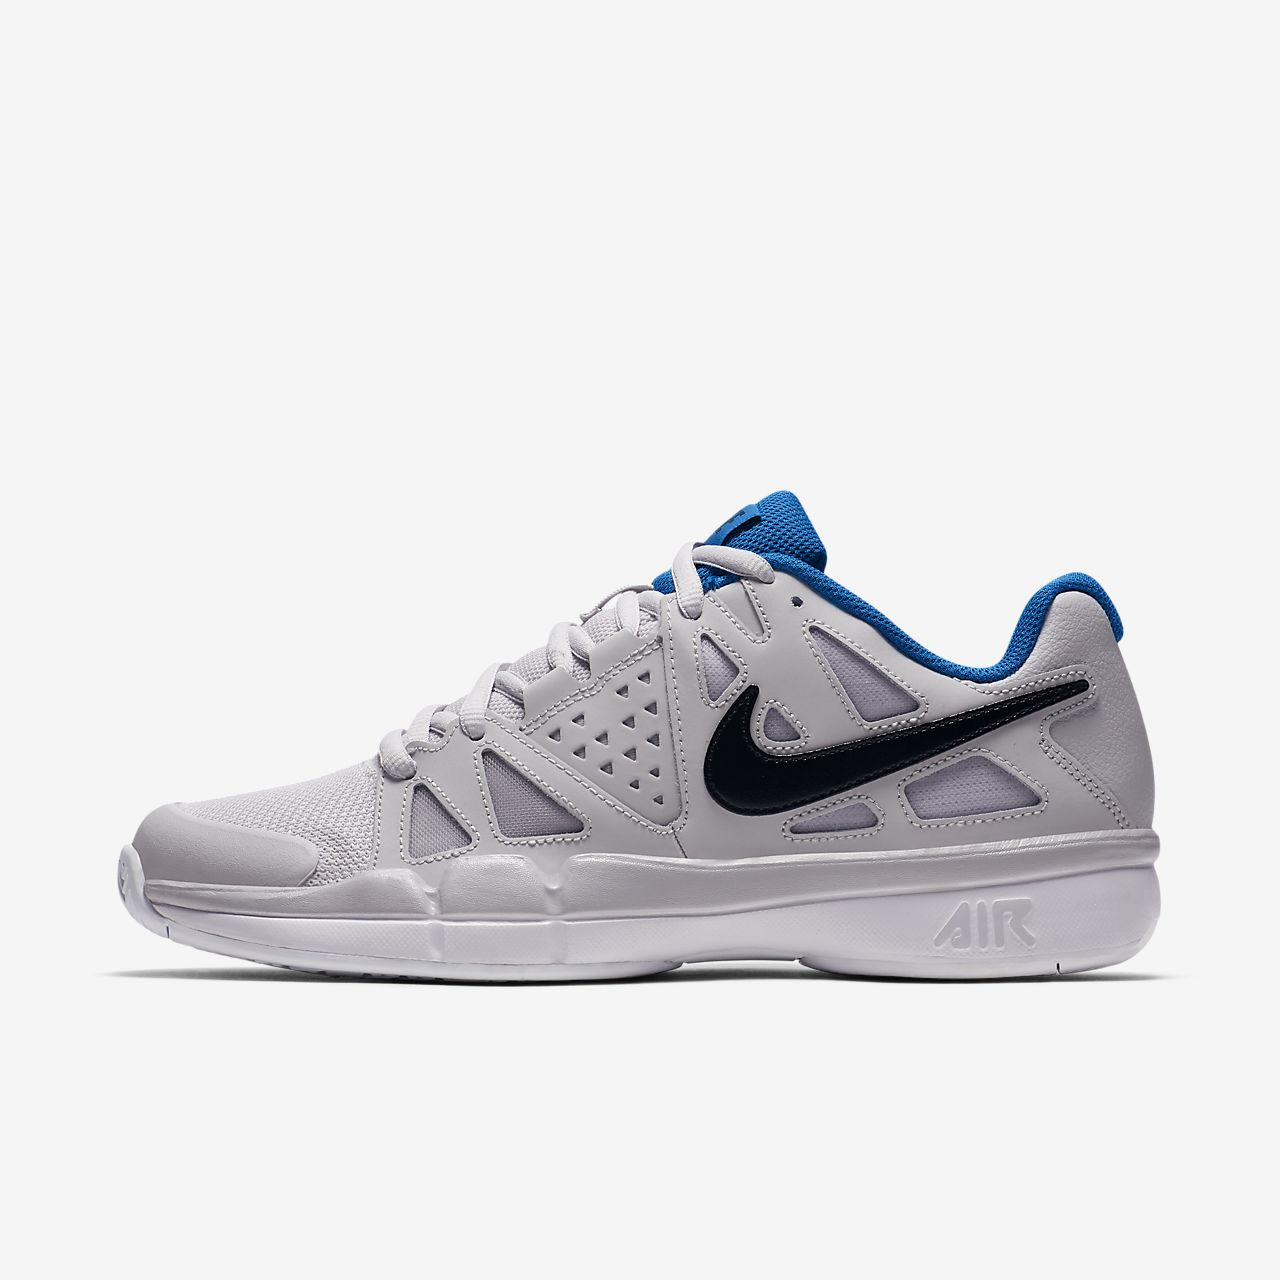 ... NikeCourt Air Vapor Advantage Men's Tennis Shoe